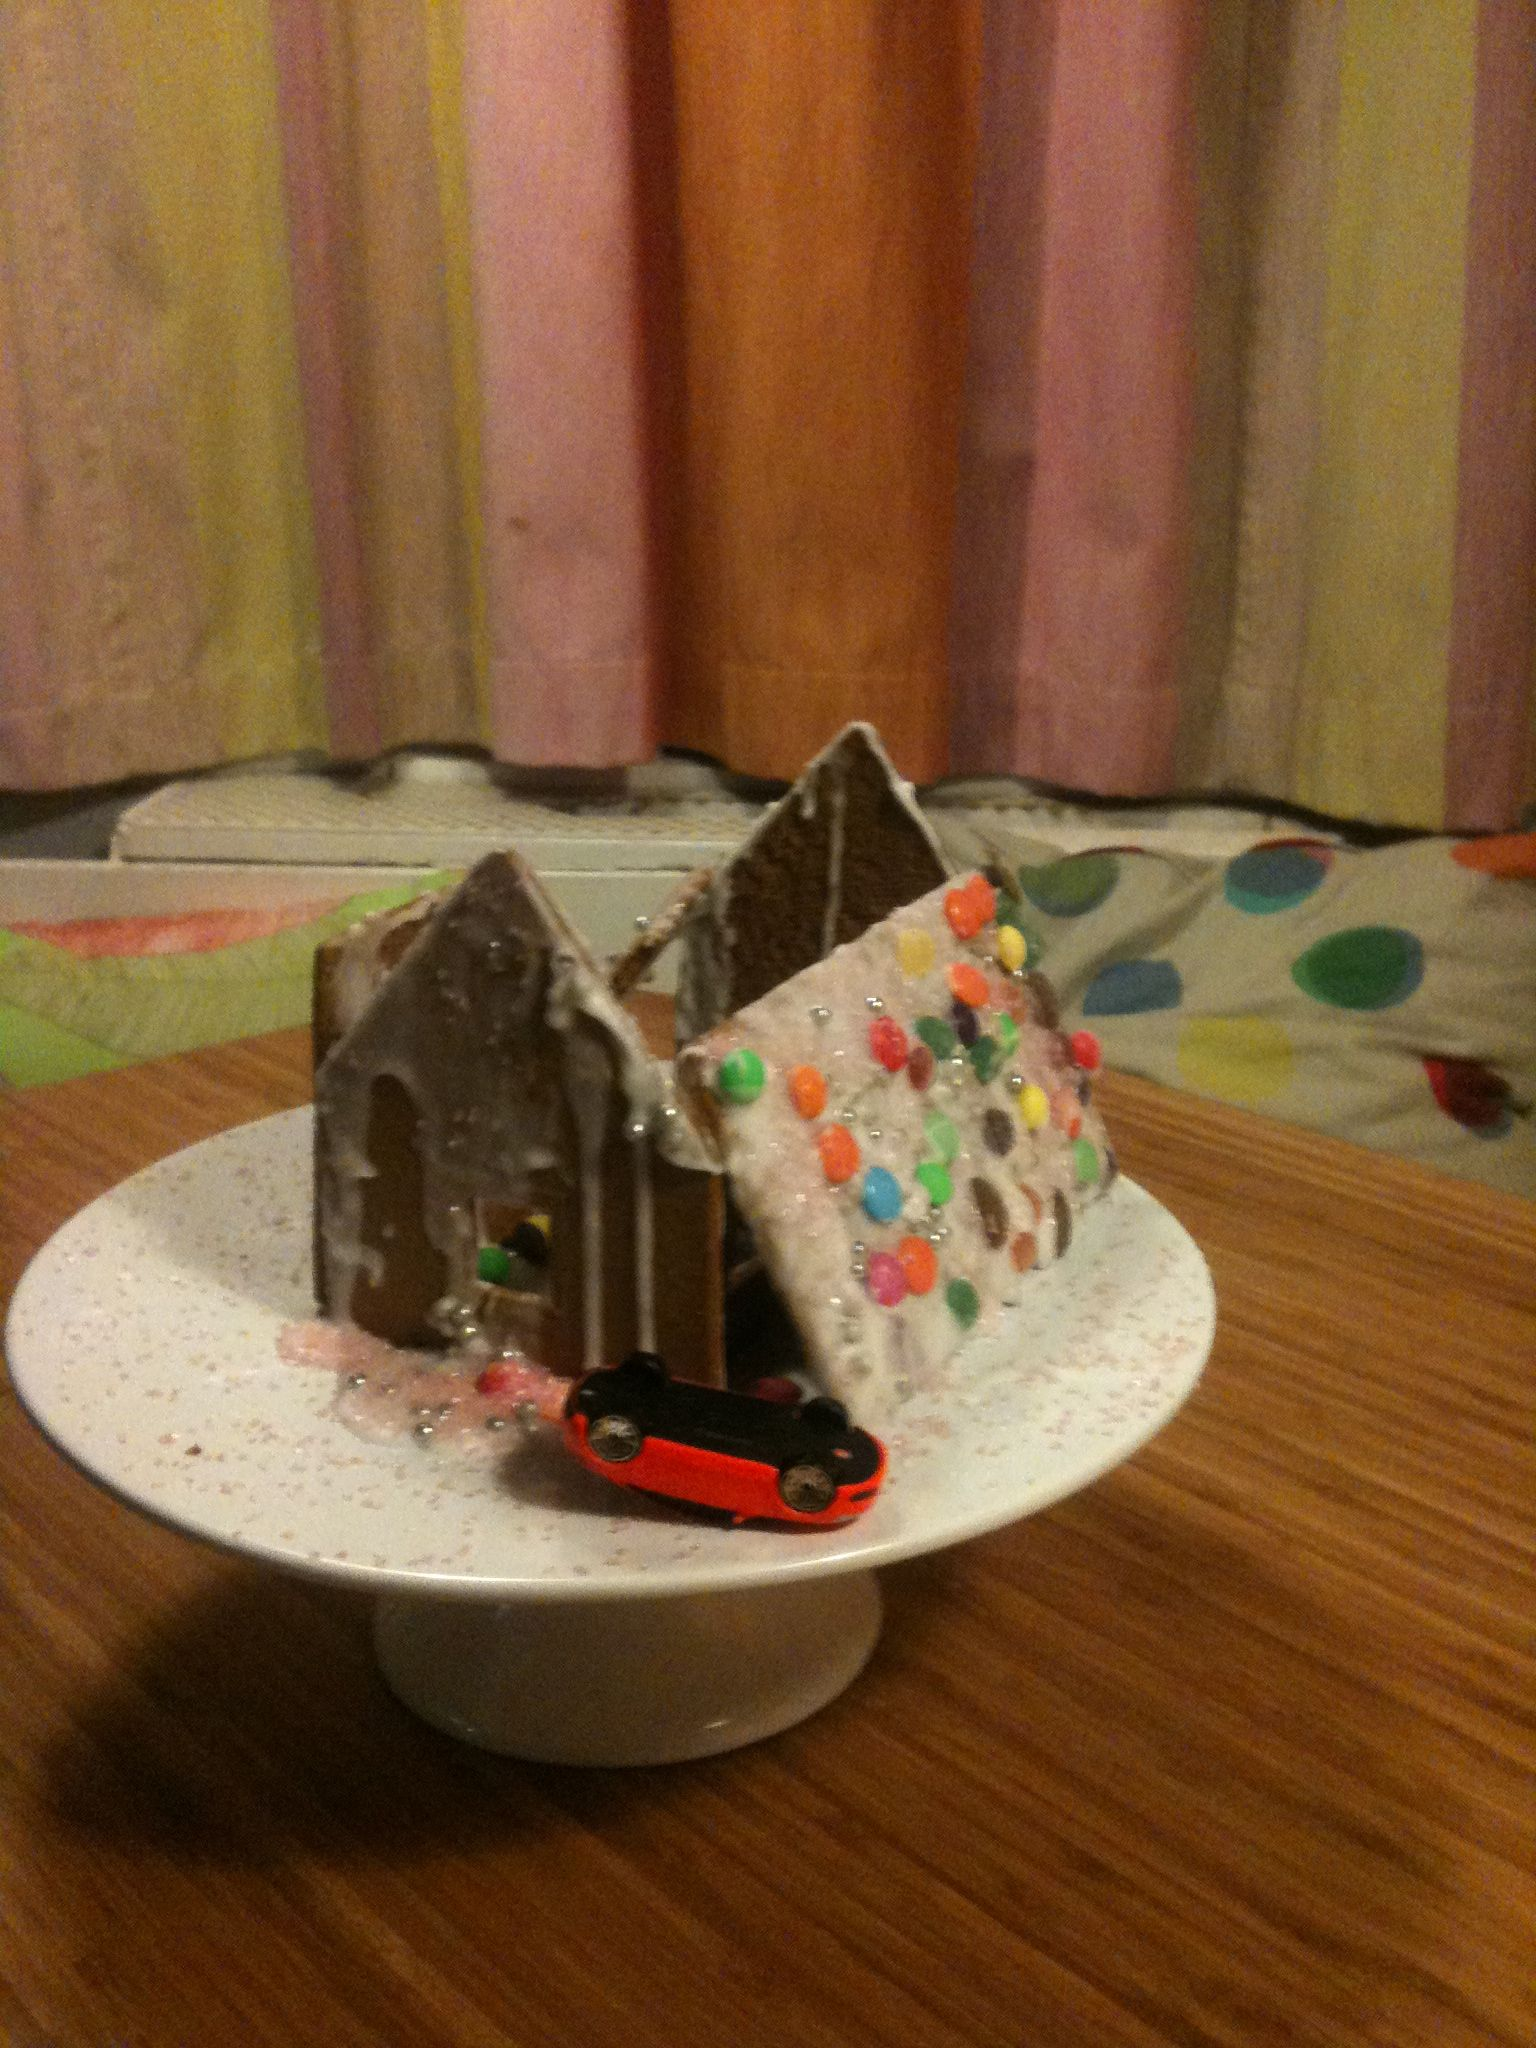 Our Ikea gingerbread house. When it became obvious to me